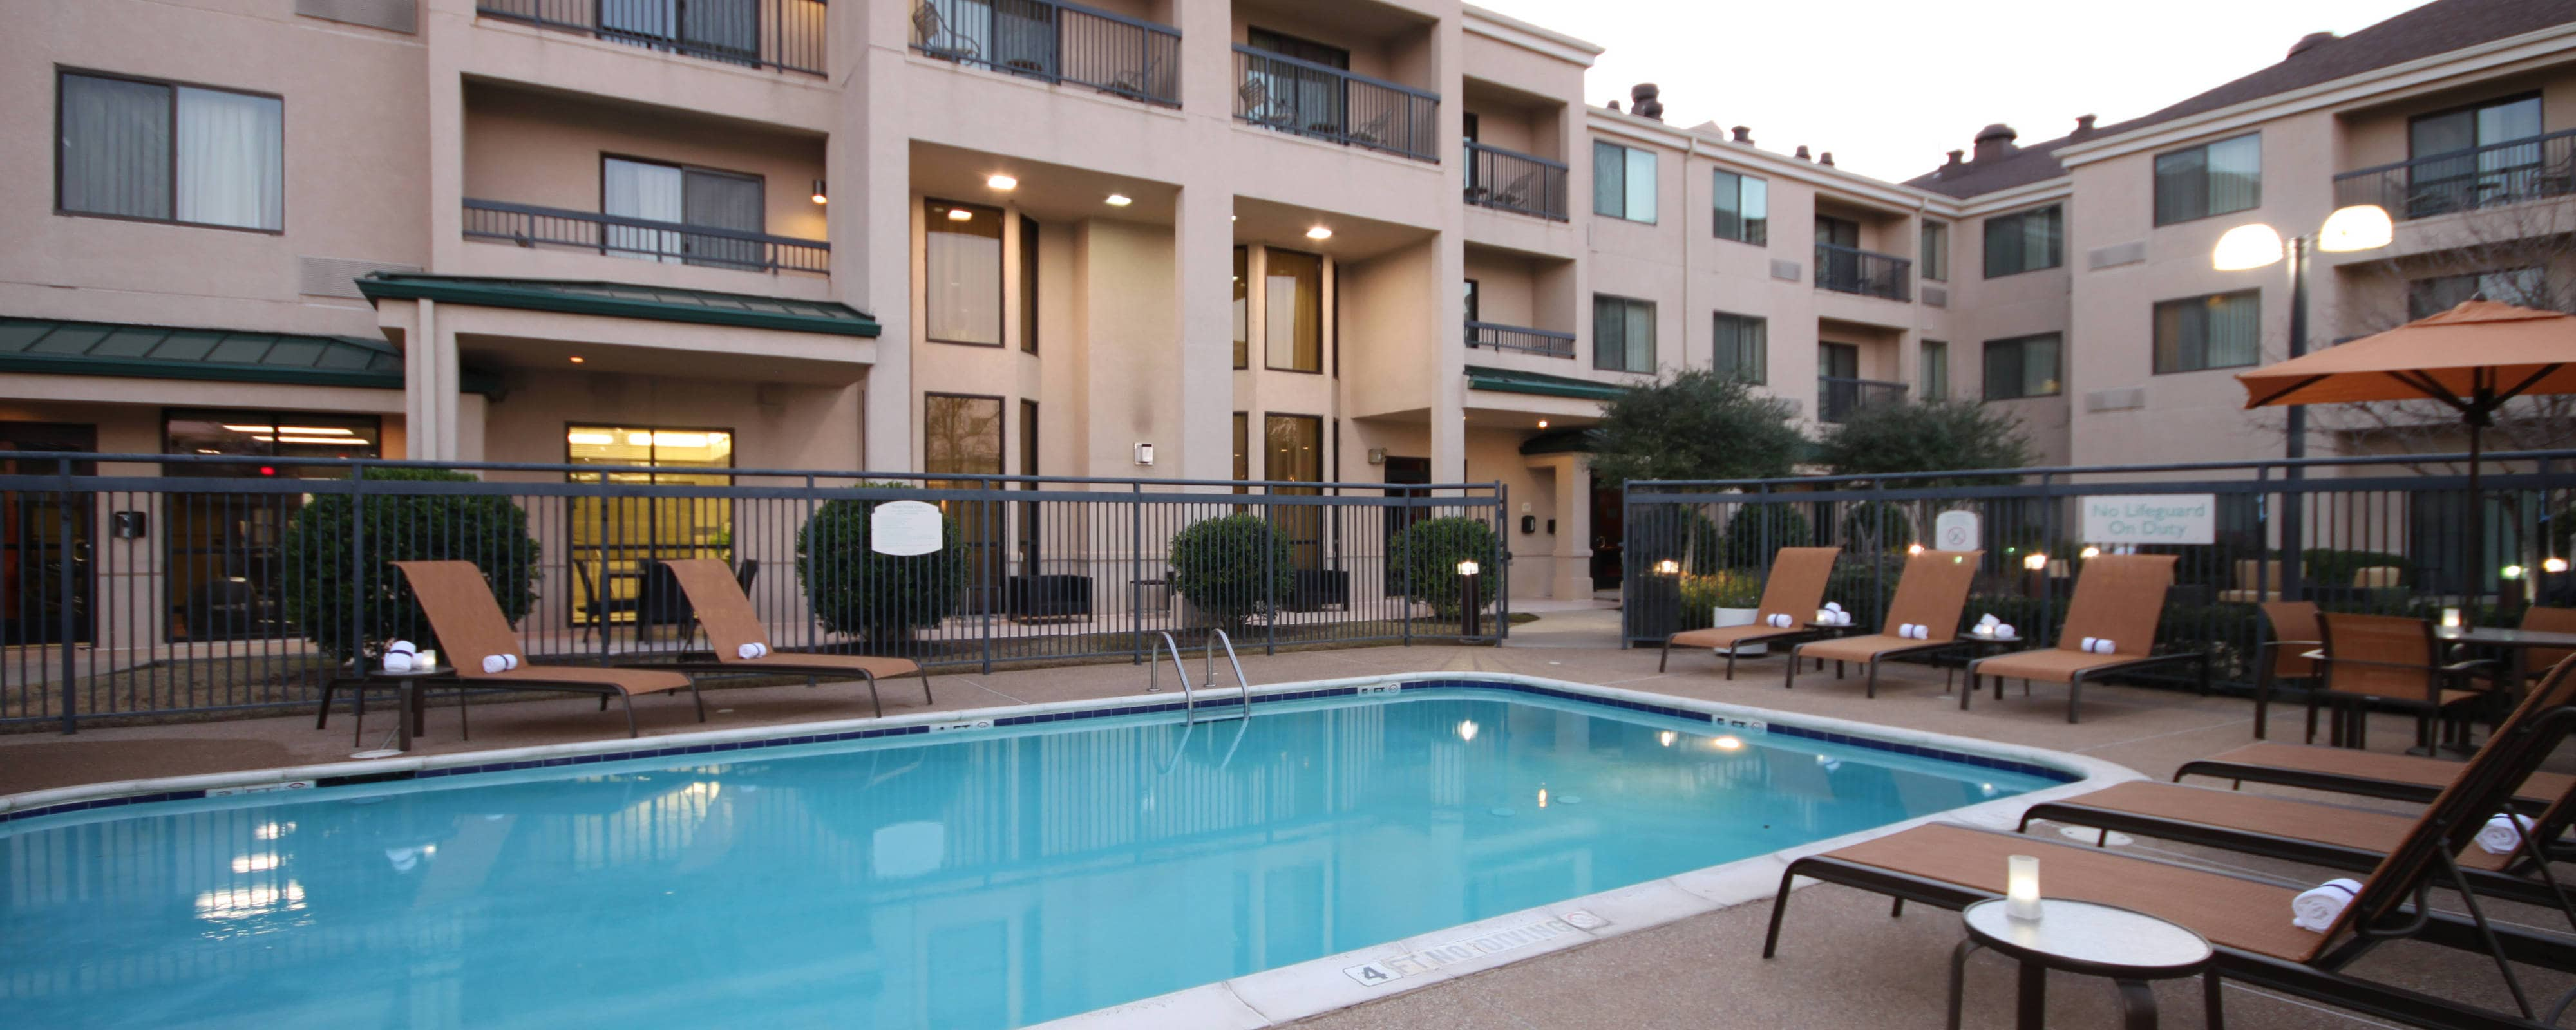 Lewisville DFW hotel indoor pool